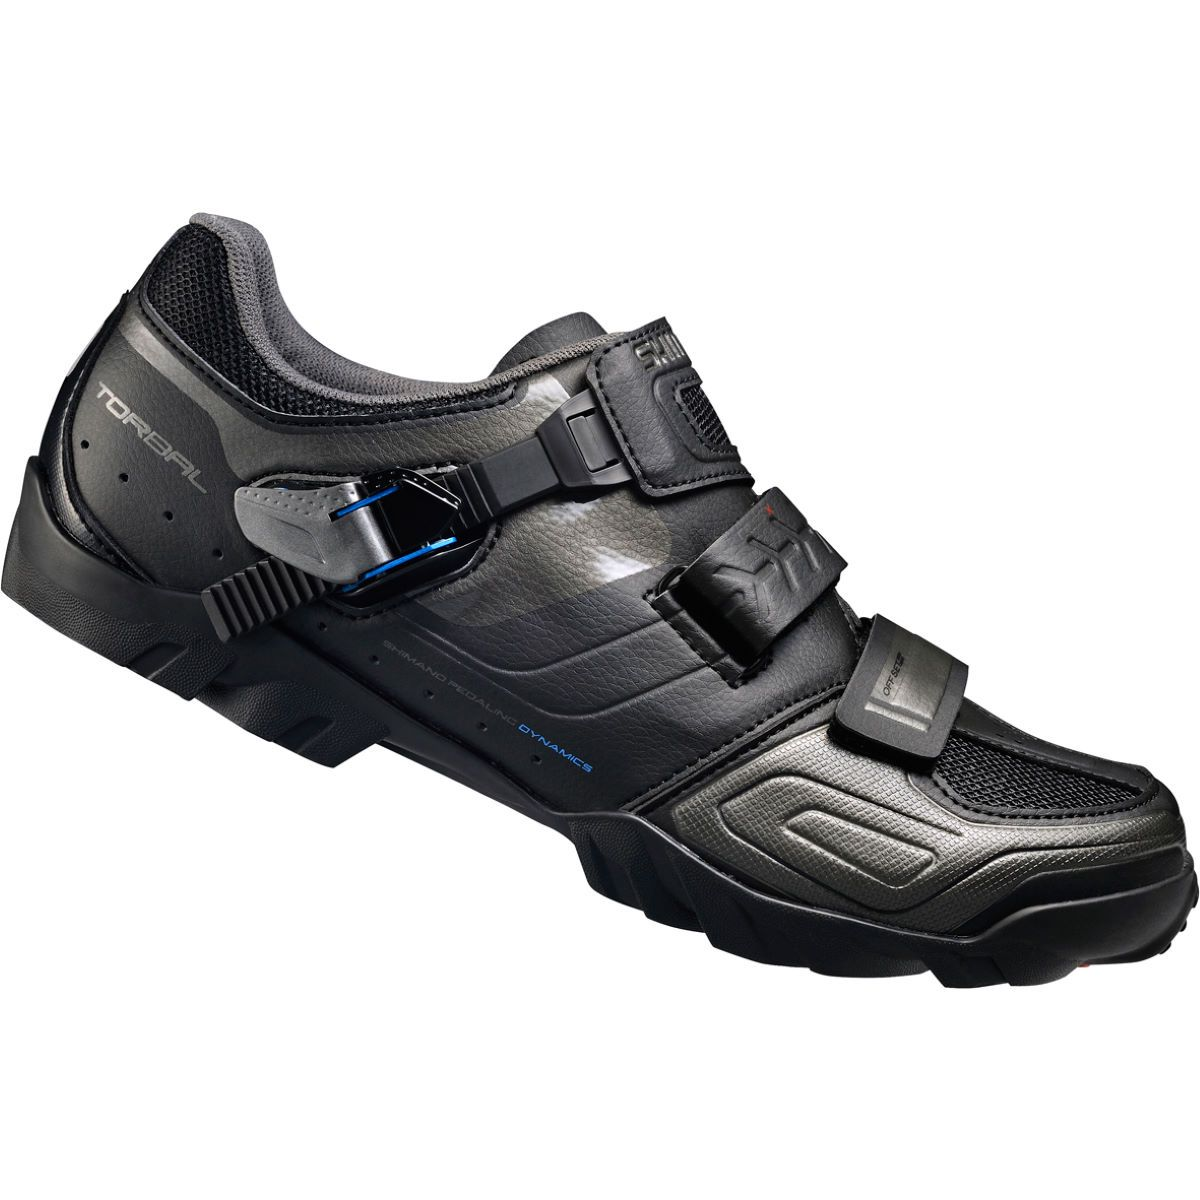 Shimano M089 Spd Mountain Bike Shoes Wide Fit Offroad Shoes